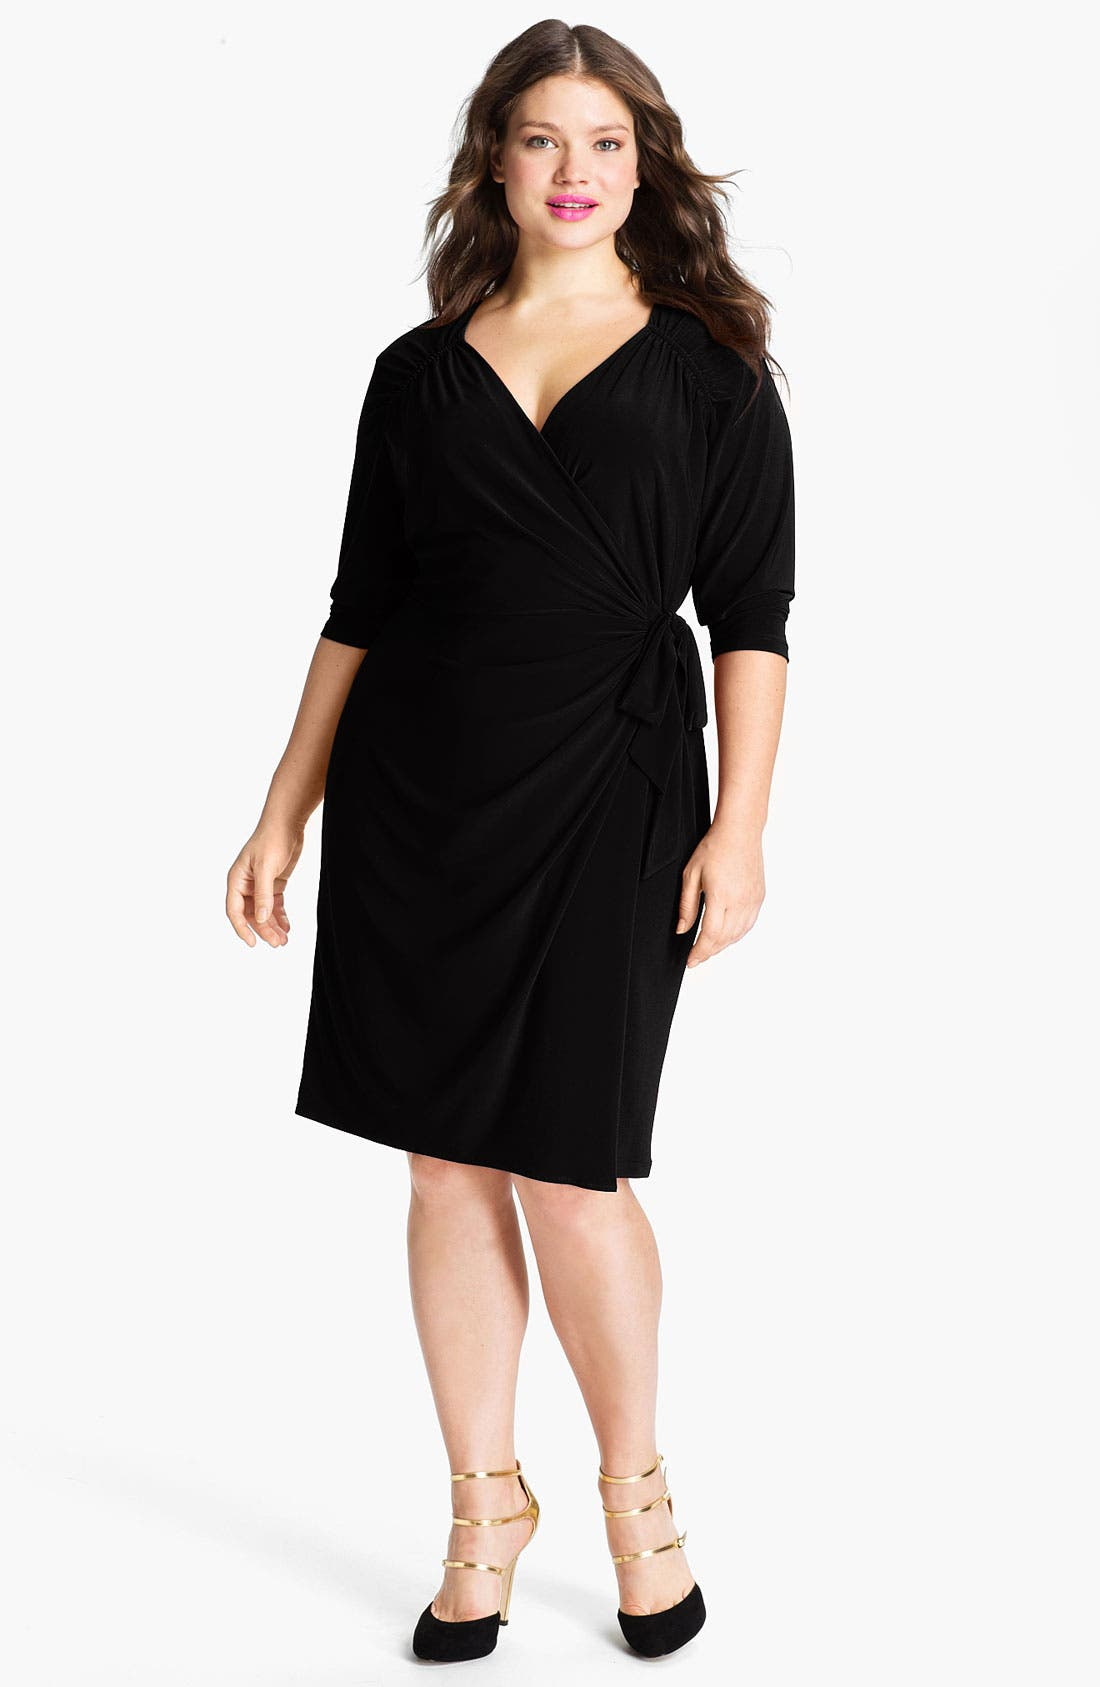 Alternate Image 1 Selected - Suzi Chin for Maggy Boutique Jersey Faux Wrap Dress (Plus)